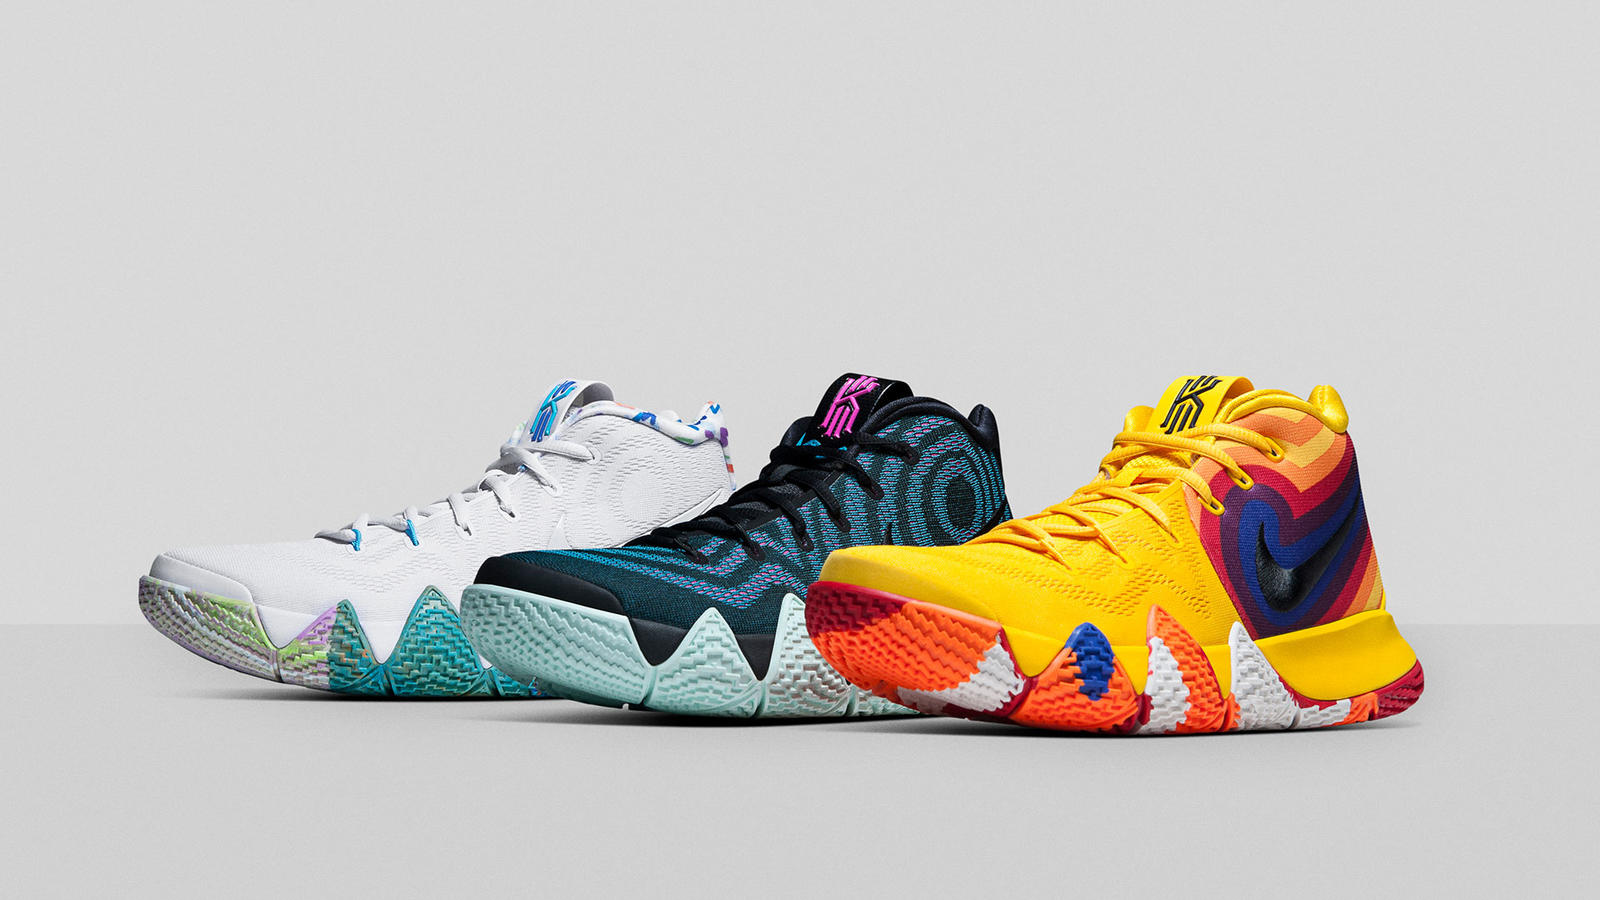 quality design 4df84 374e3 KYRIE 4 Decades Pack - Nike News